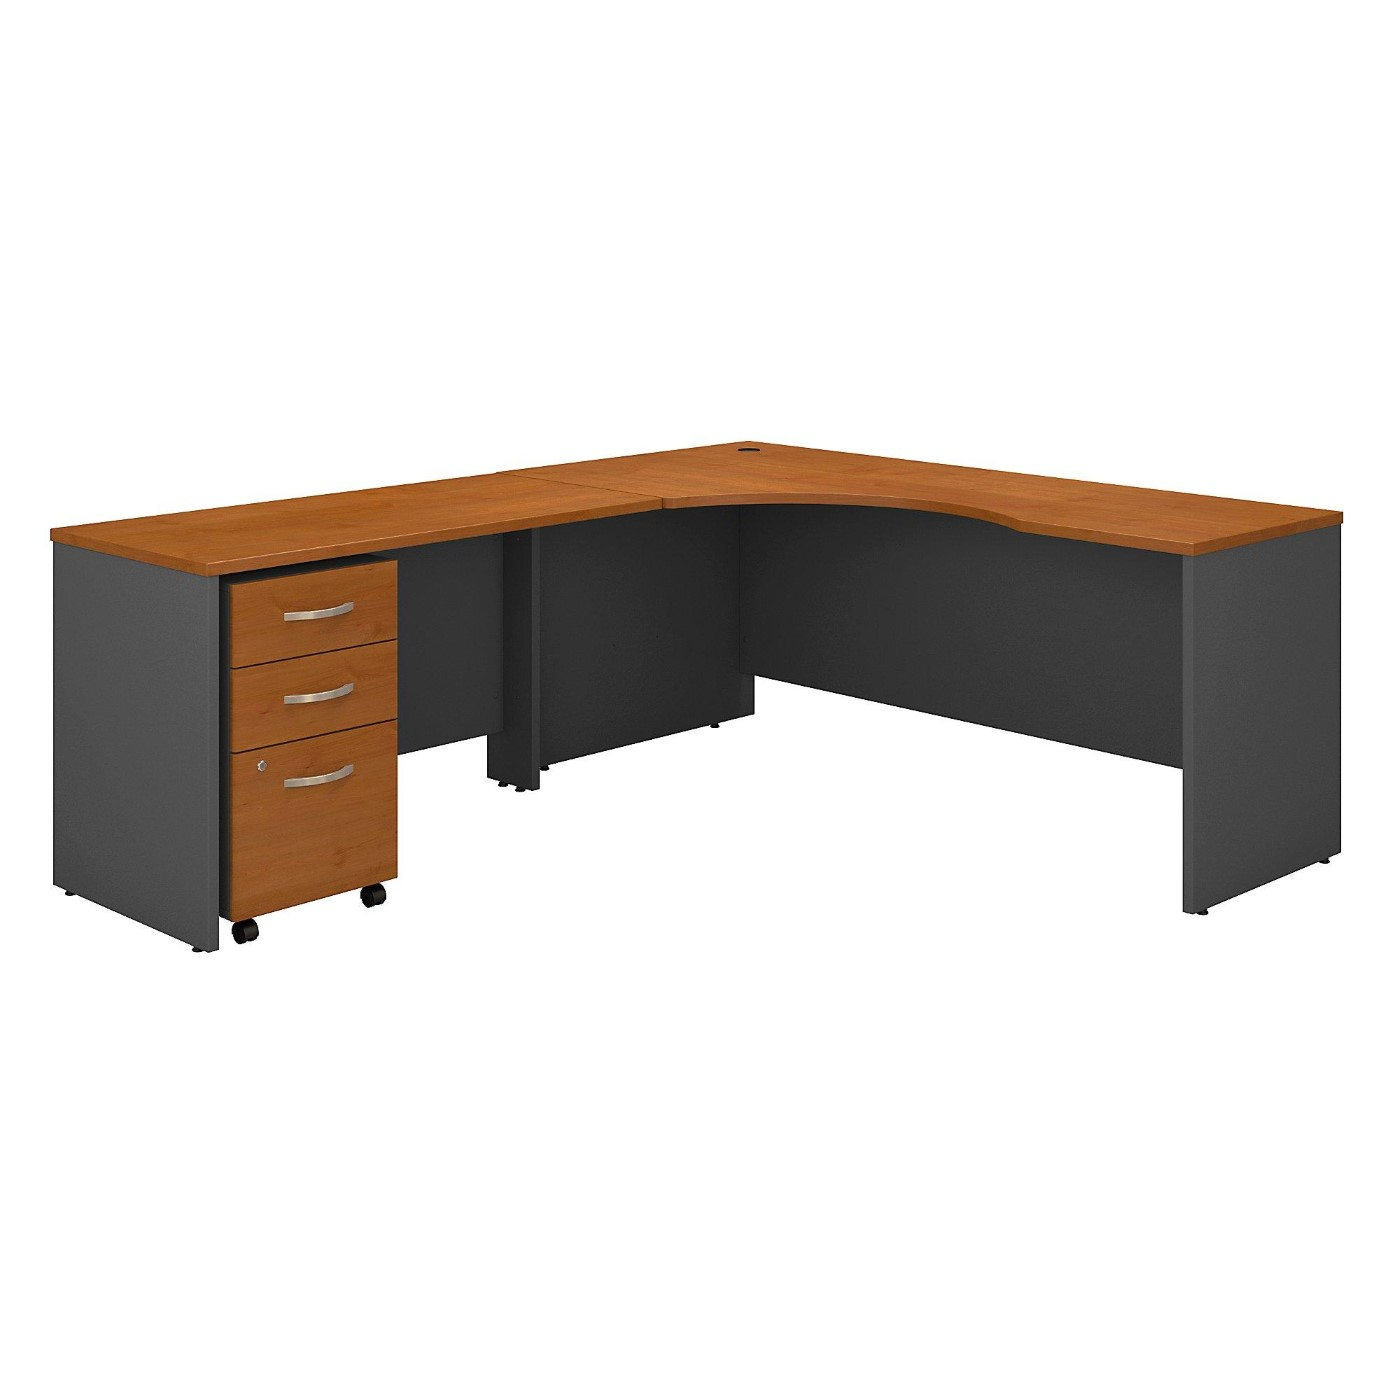 <font color=#c60><b>BUSH BUSINESS FURNITURE SERIES C 72W RIGHT HANDED CORNER DESK WITH 48W RETURN AND MOBILE FILE CABINET. FREE SHIPPING</font></b>